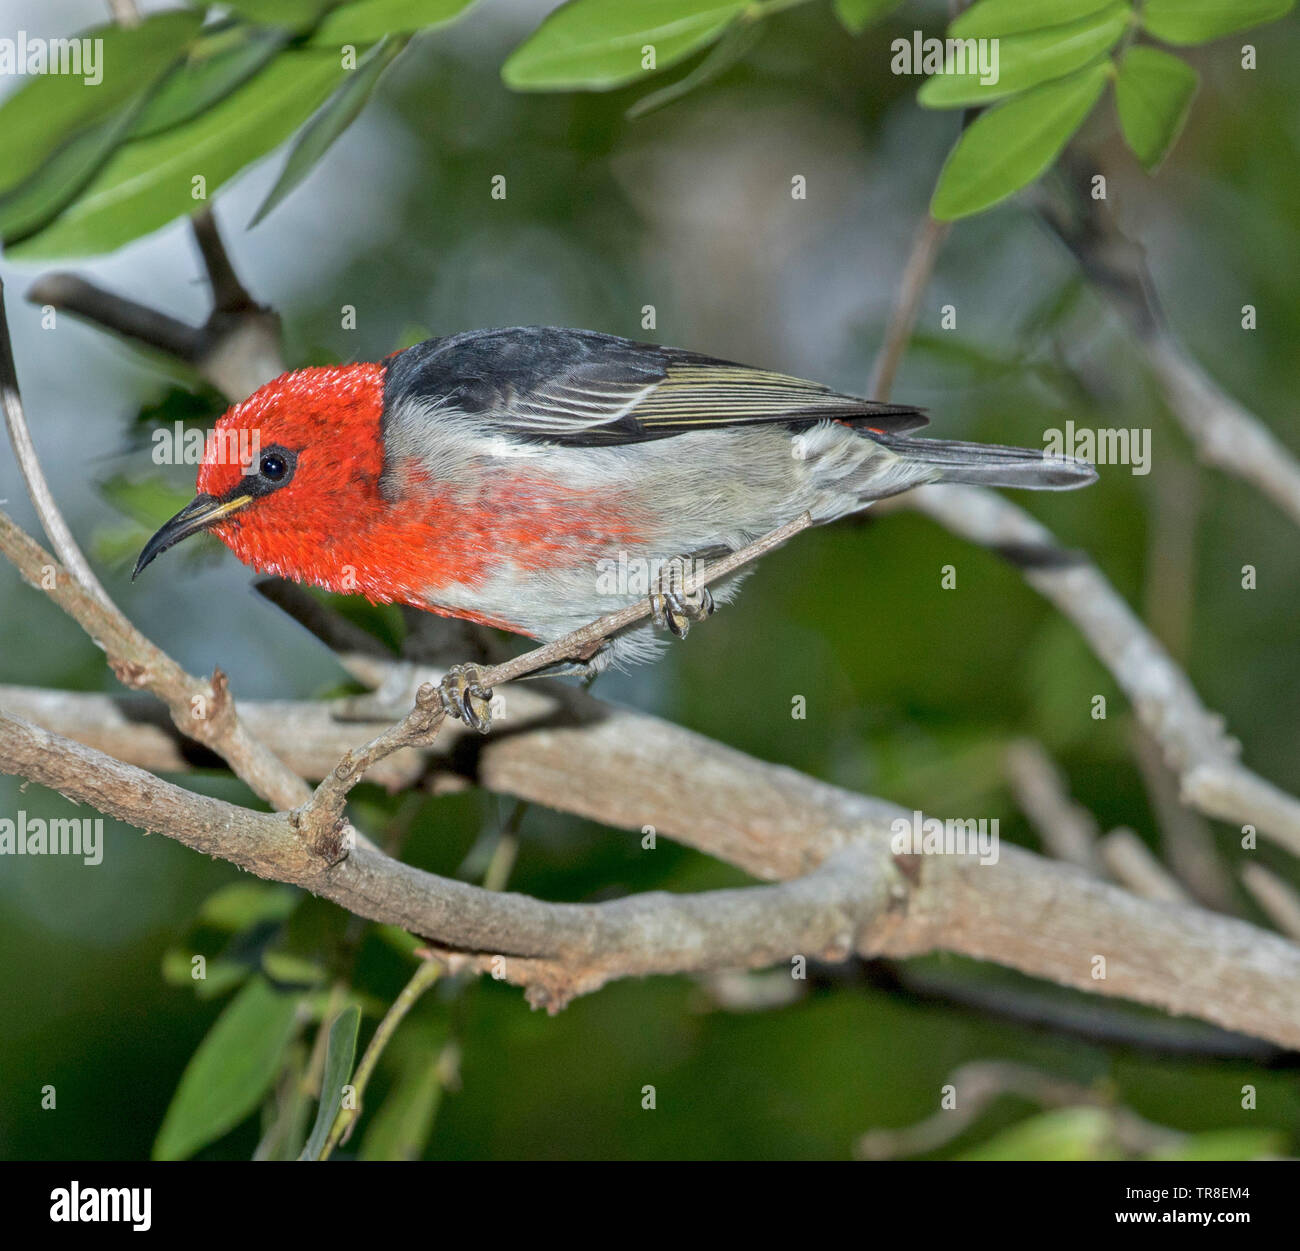 Beautiful red and black male scarlet honeyeater on branch of shrub against background of green foliage in Australia - Stock Image